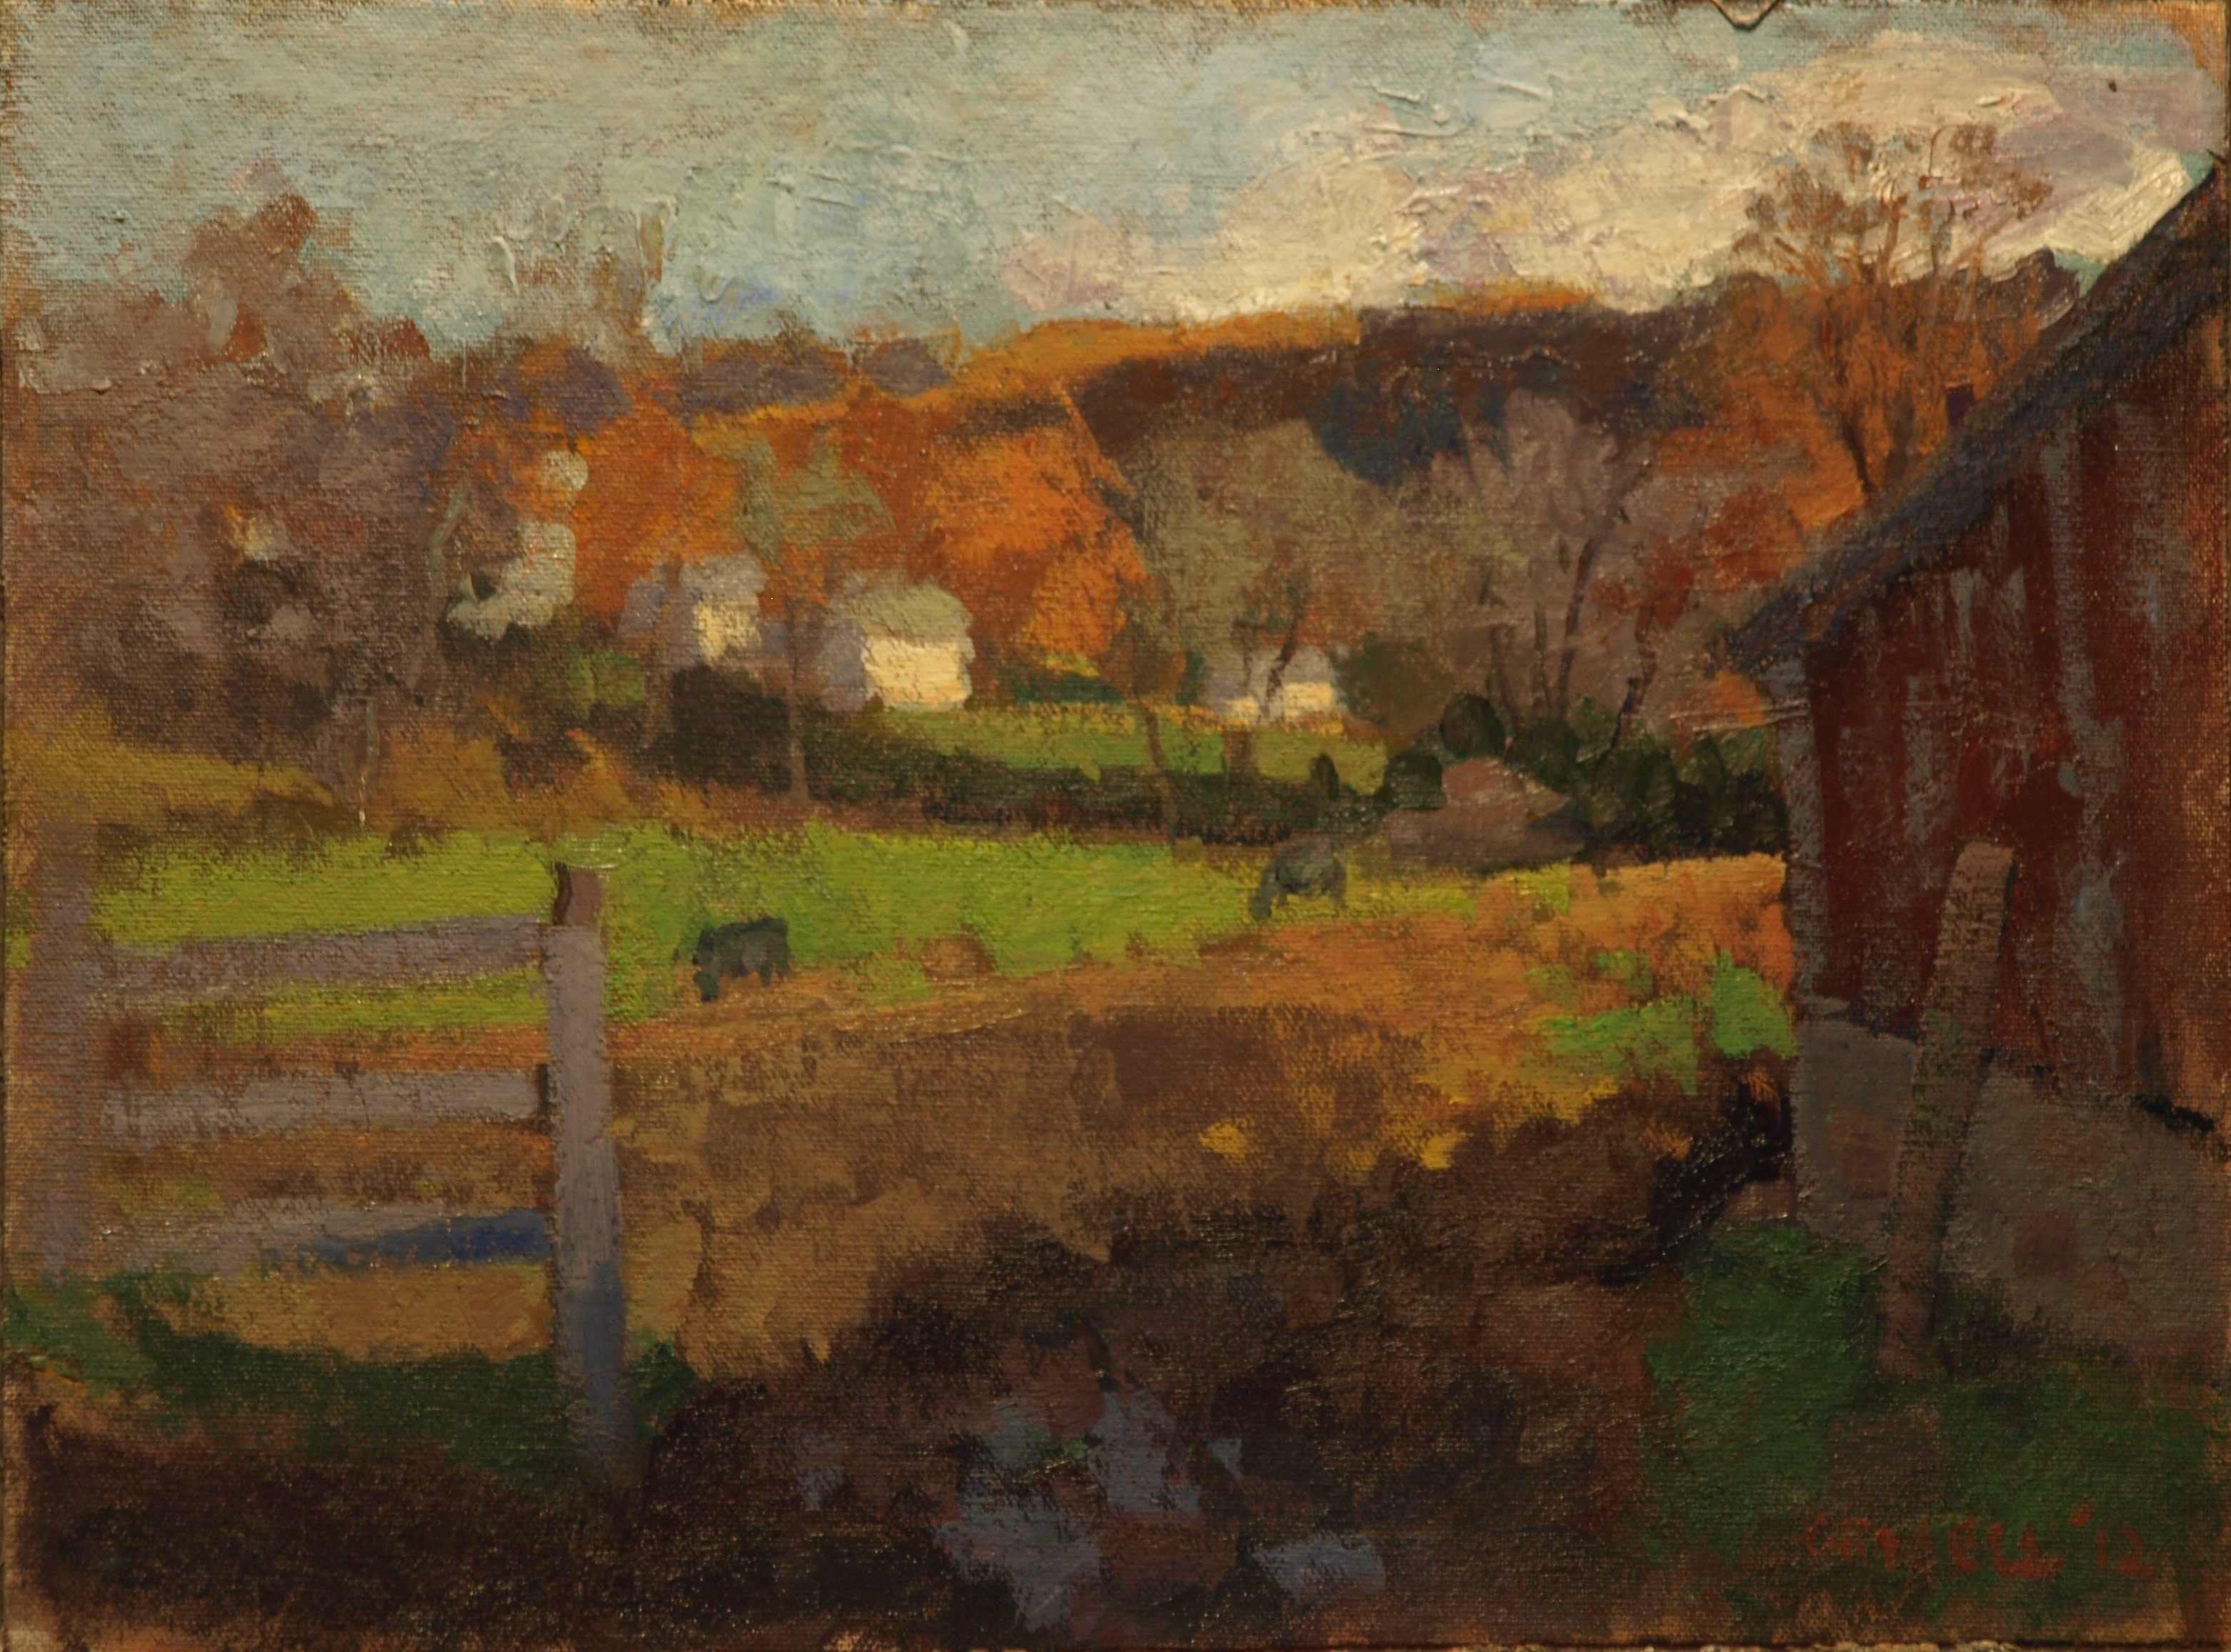 Farm and Village, Oil on Canvas on Panel, 12 x 16 Inches, by Susan Grisell, $275